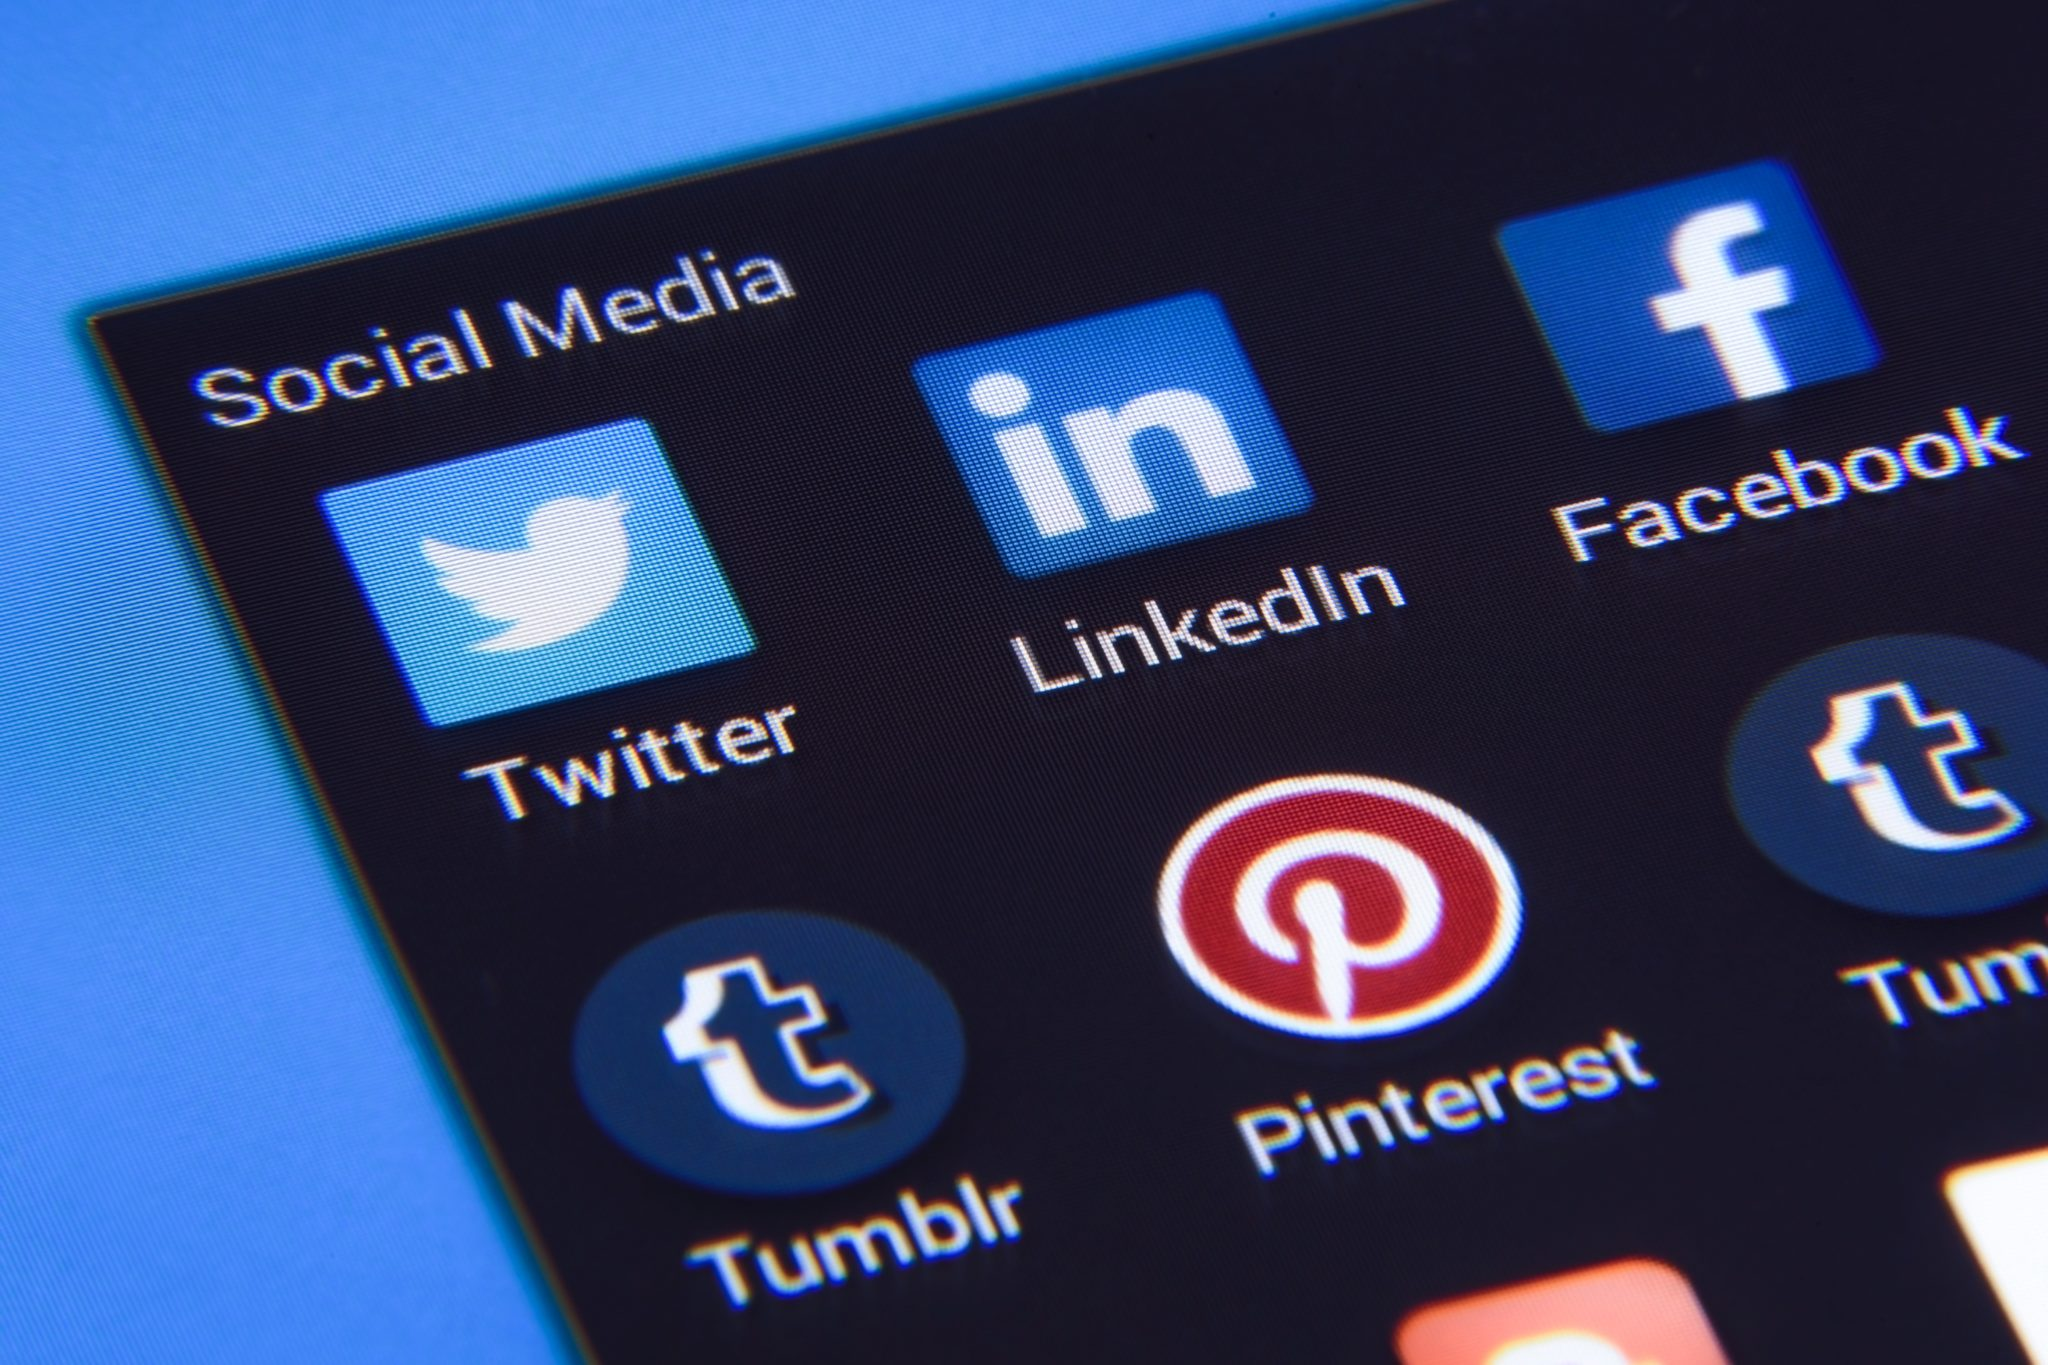 Graphic shows social media app icons on a smartphone screen, including Twitter, LinkedIn and Facebook. While shutting down CBD pages was an extreme move, Facebook and other social media services routinely block hemp and CBD brands from their advertising platforms.